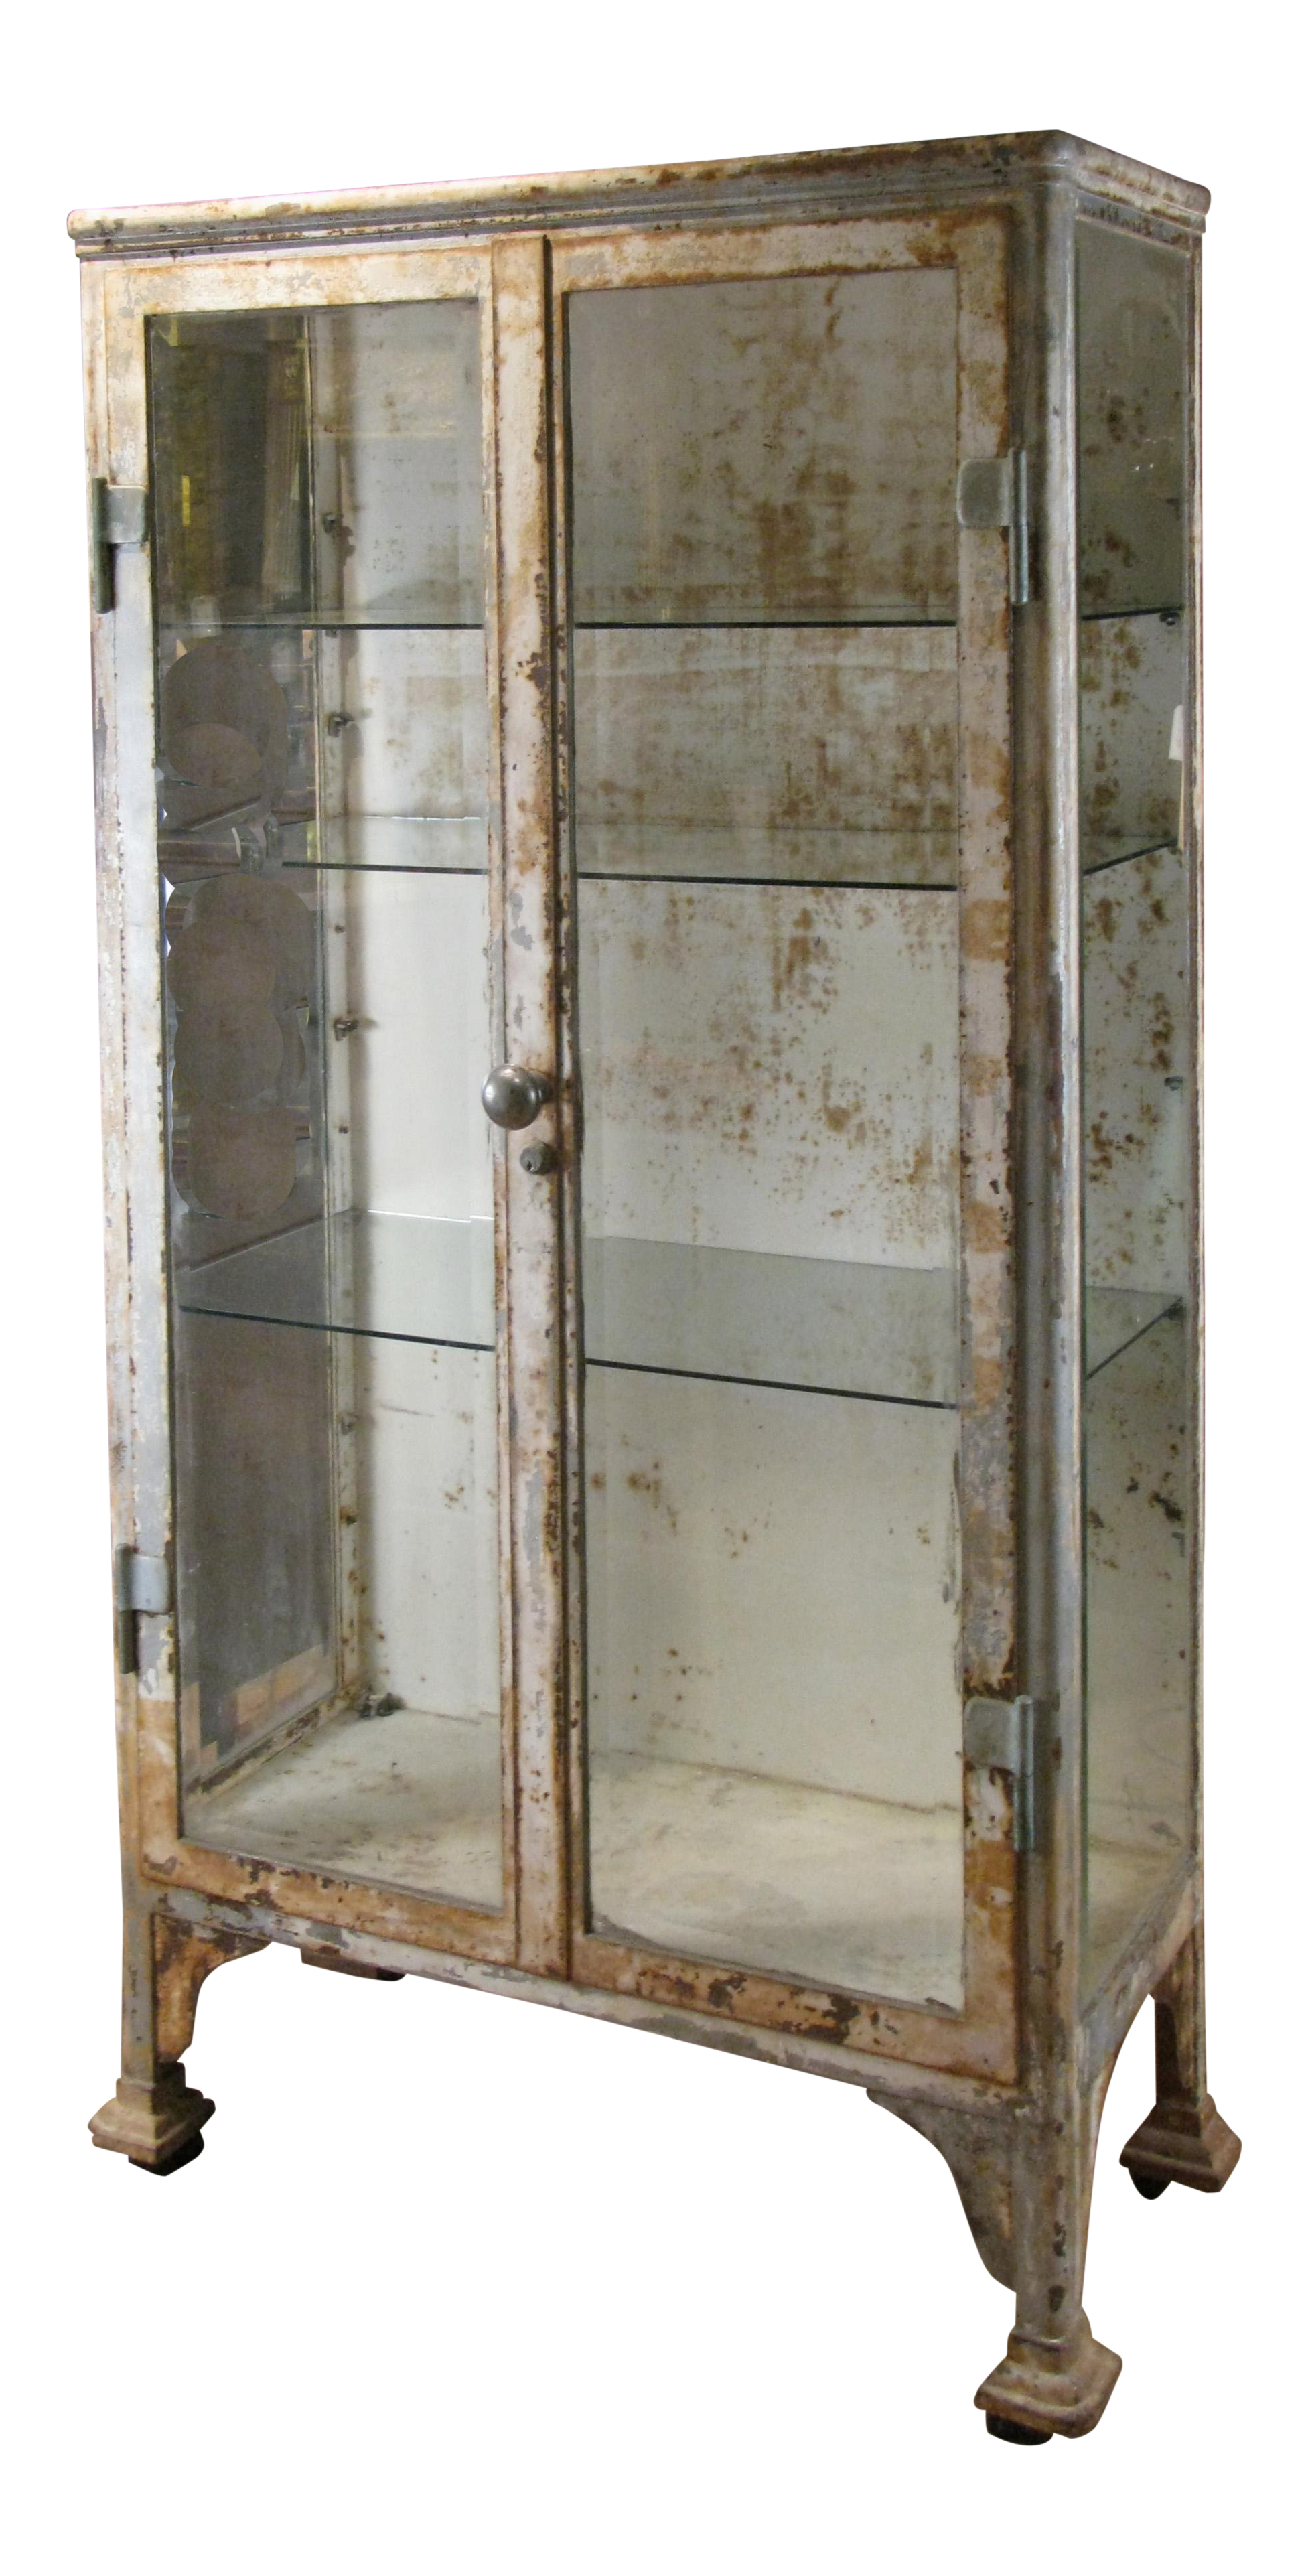 Antique Cast Iron Glass Apothecary Cabinet On Decaso Com Glass Cabinet Doors Glass Cabinets Display Apothecary Cabinet